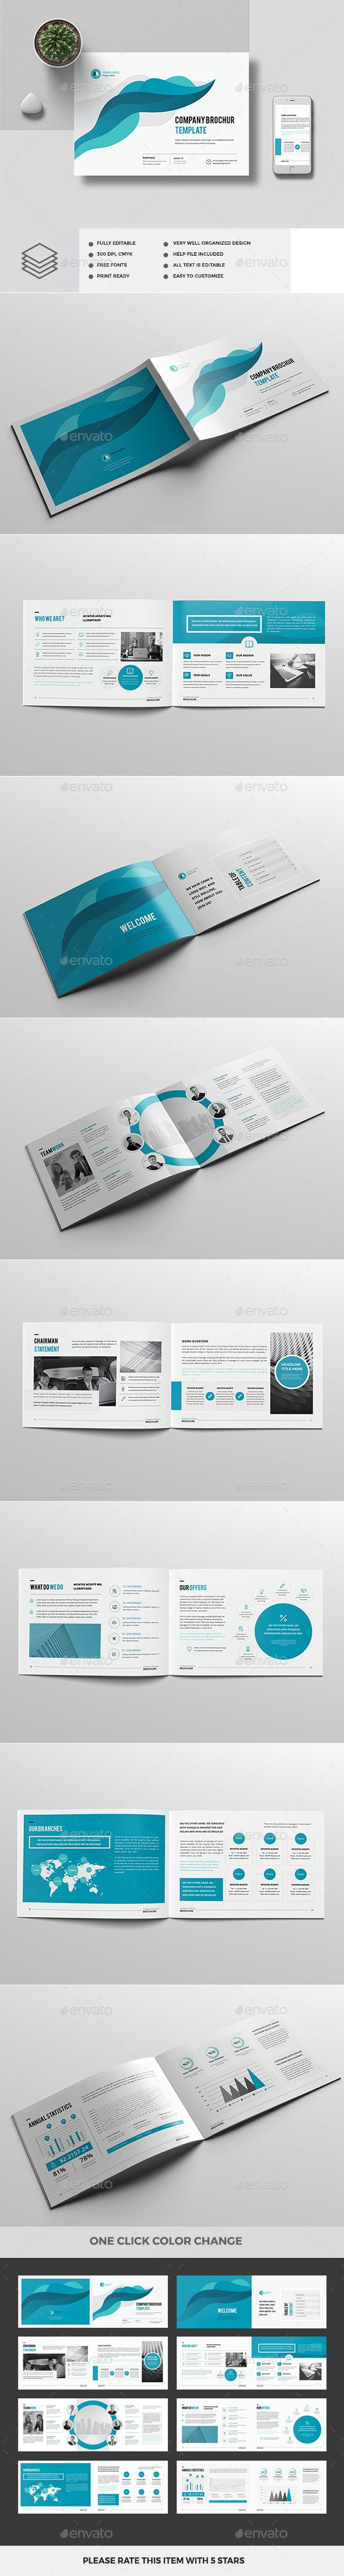 A4 Landscape Company Profile 16 Pages — InDesign INDD #a4 #visual • Download ➝ https://graphicriver.net/item/a4-landscape-company-profile-16-pages/19454168?ref=pxcr